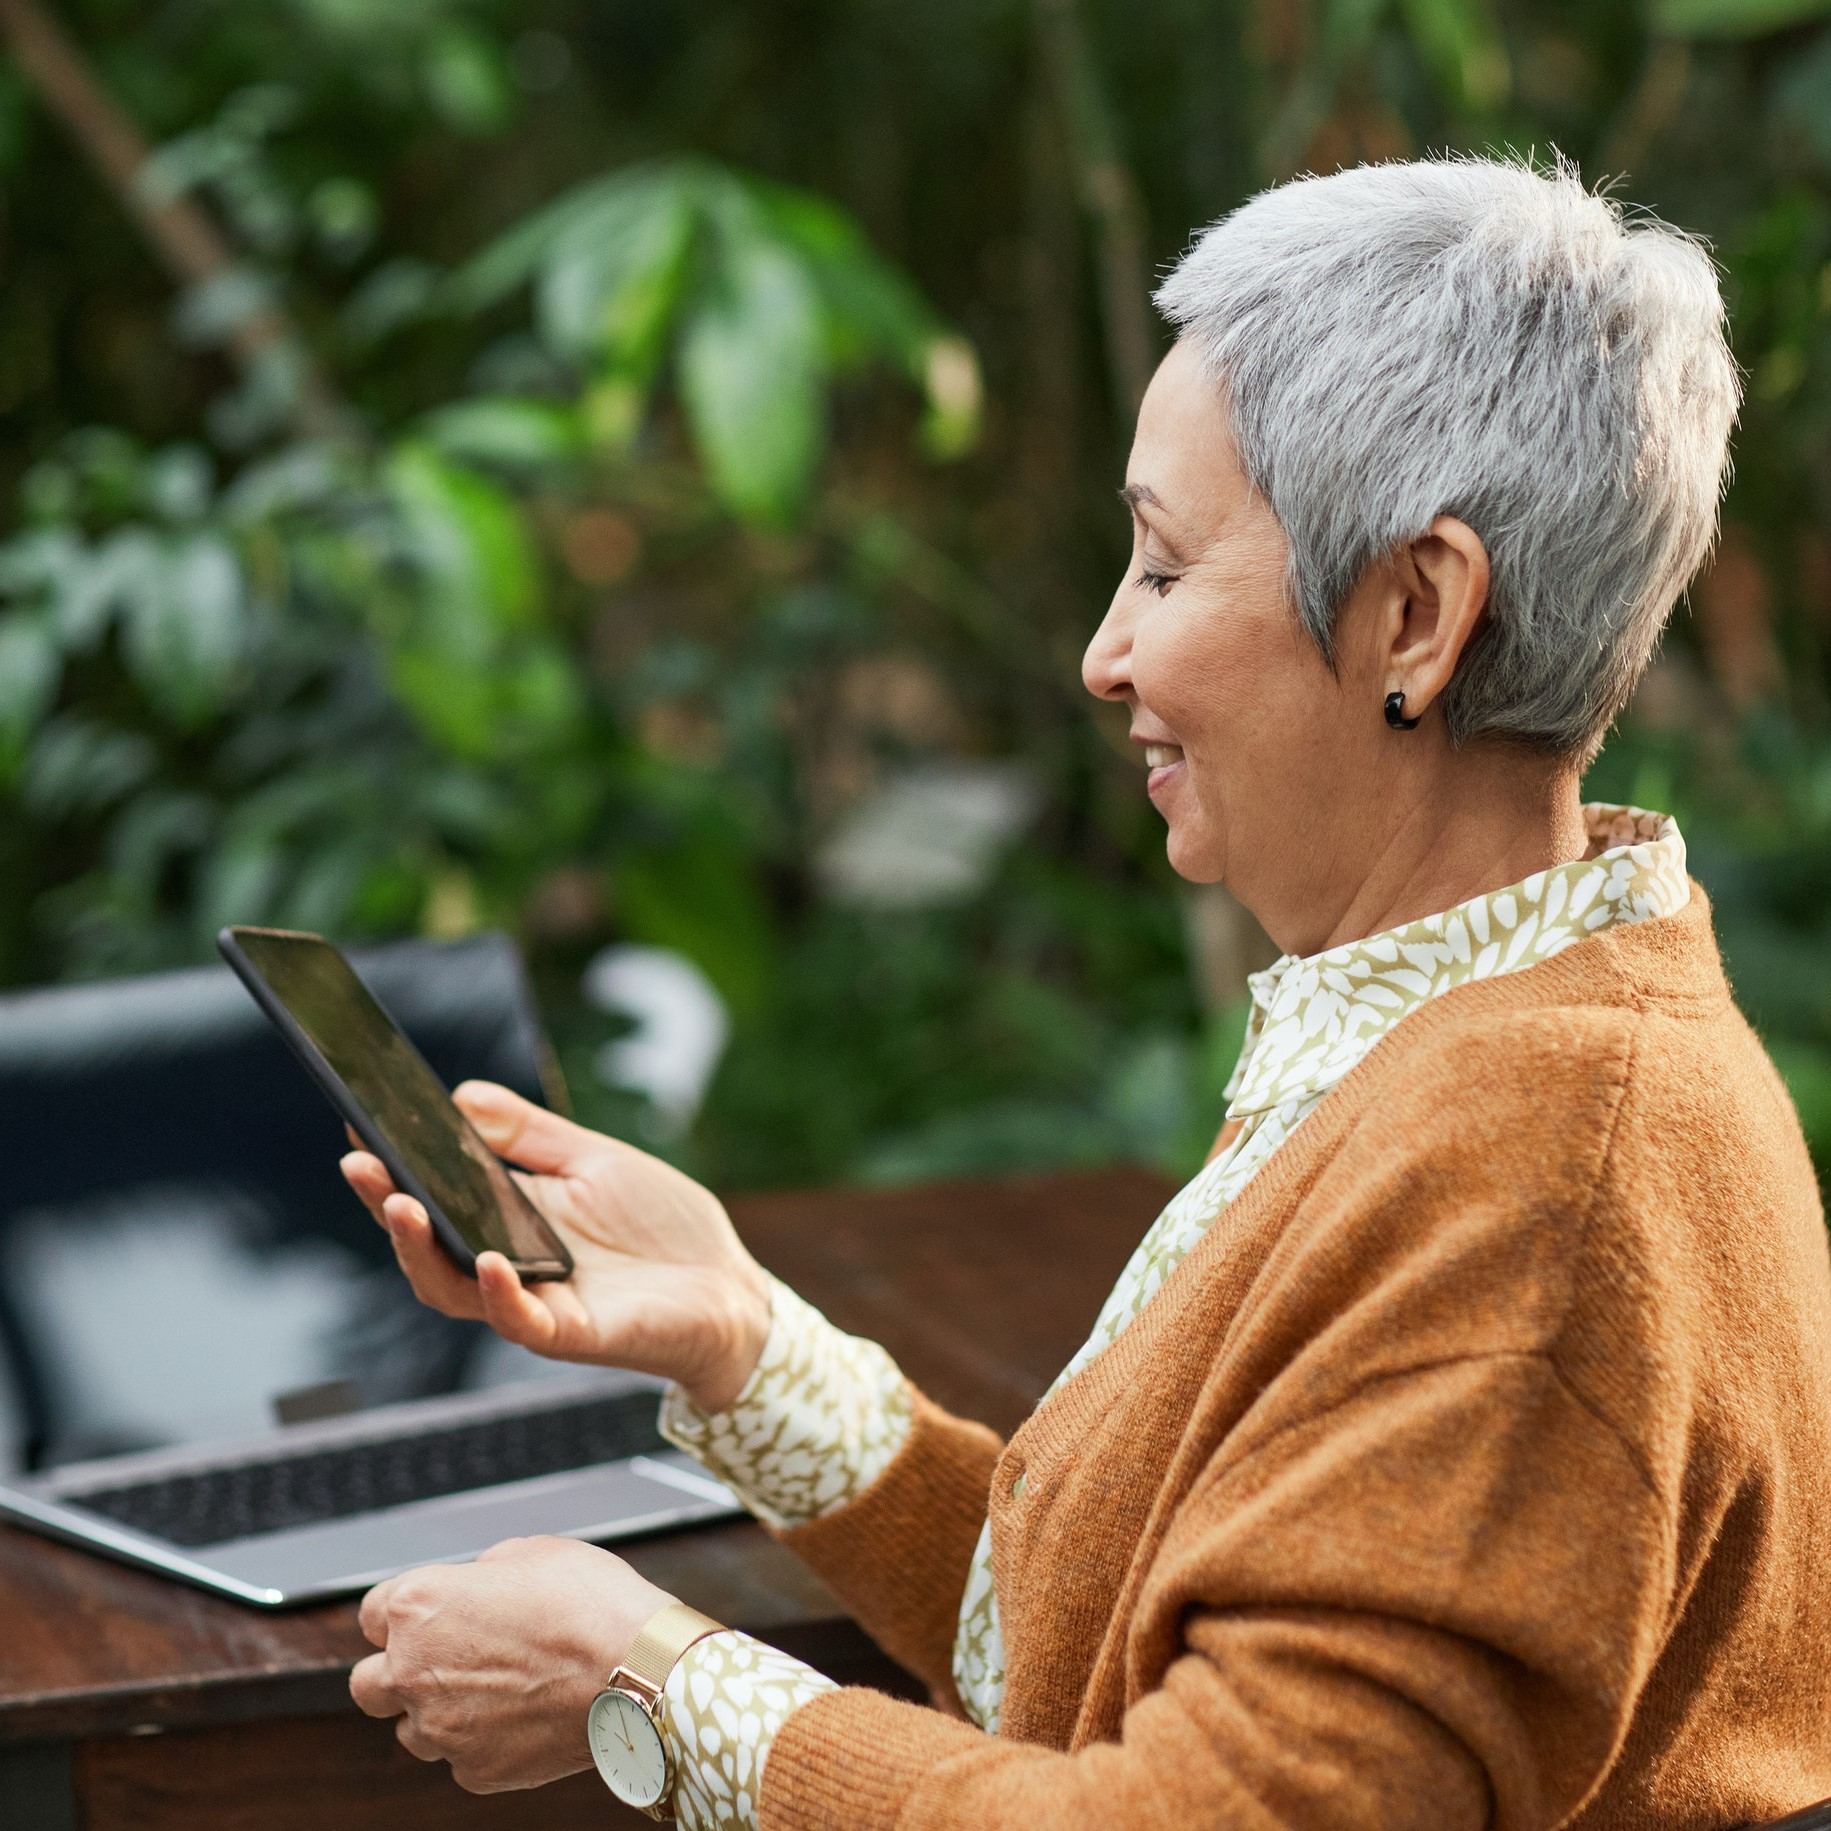 A woman seated outdoors, using a phone. Her laptop is on a table